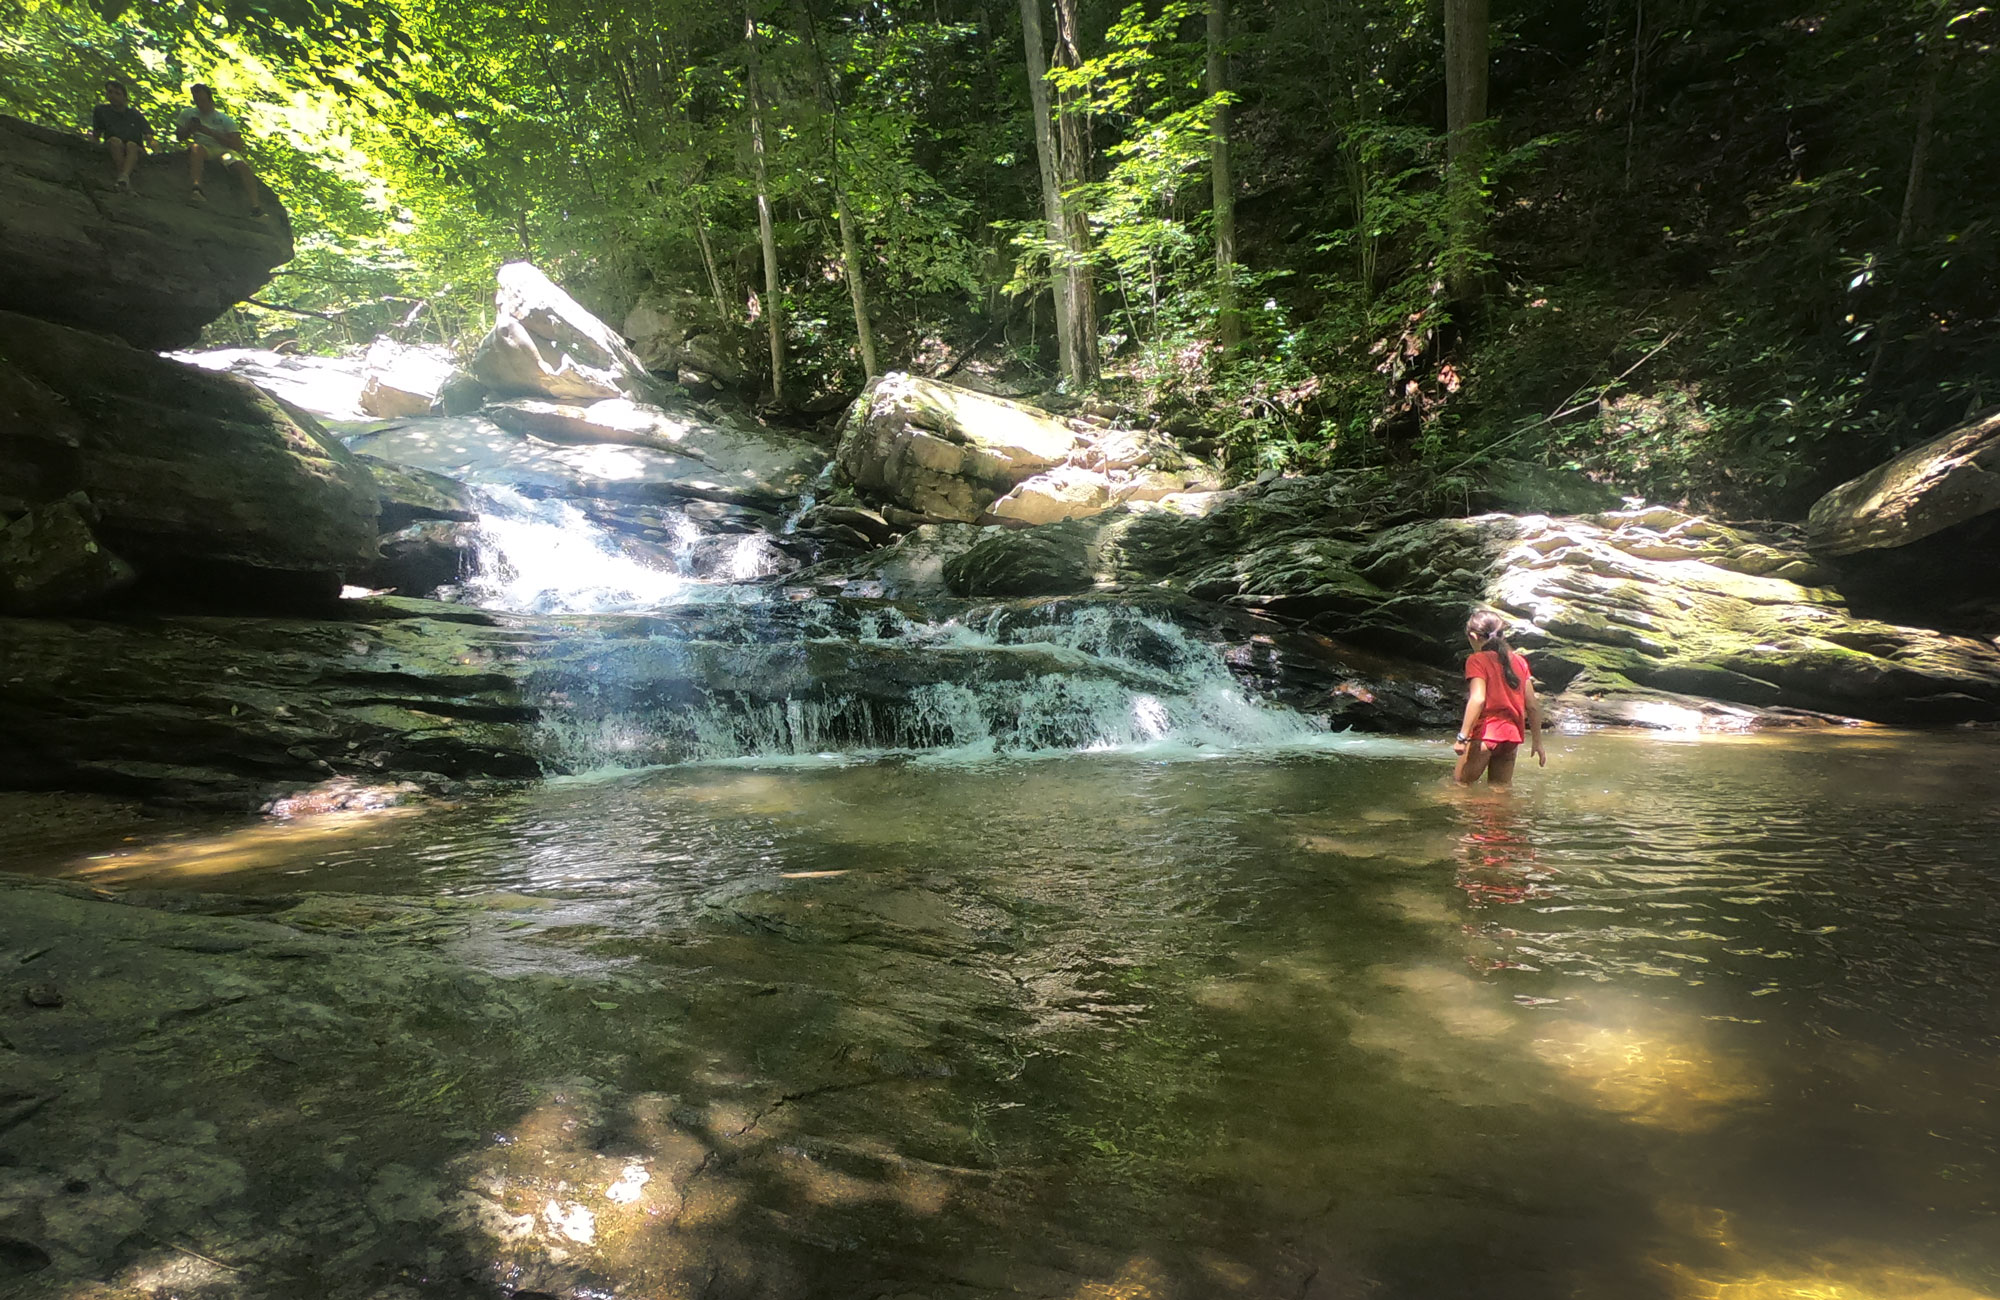 Girl wading in the Crab Orchard Falls, near Blue Ridge Parkway, North Carolina